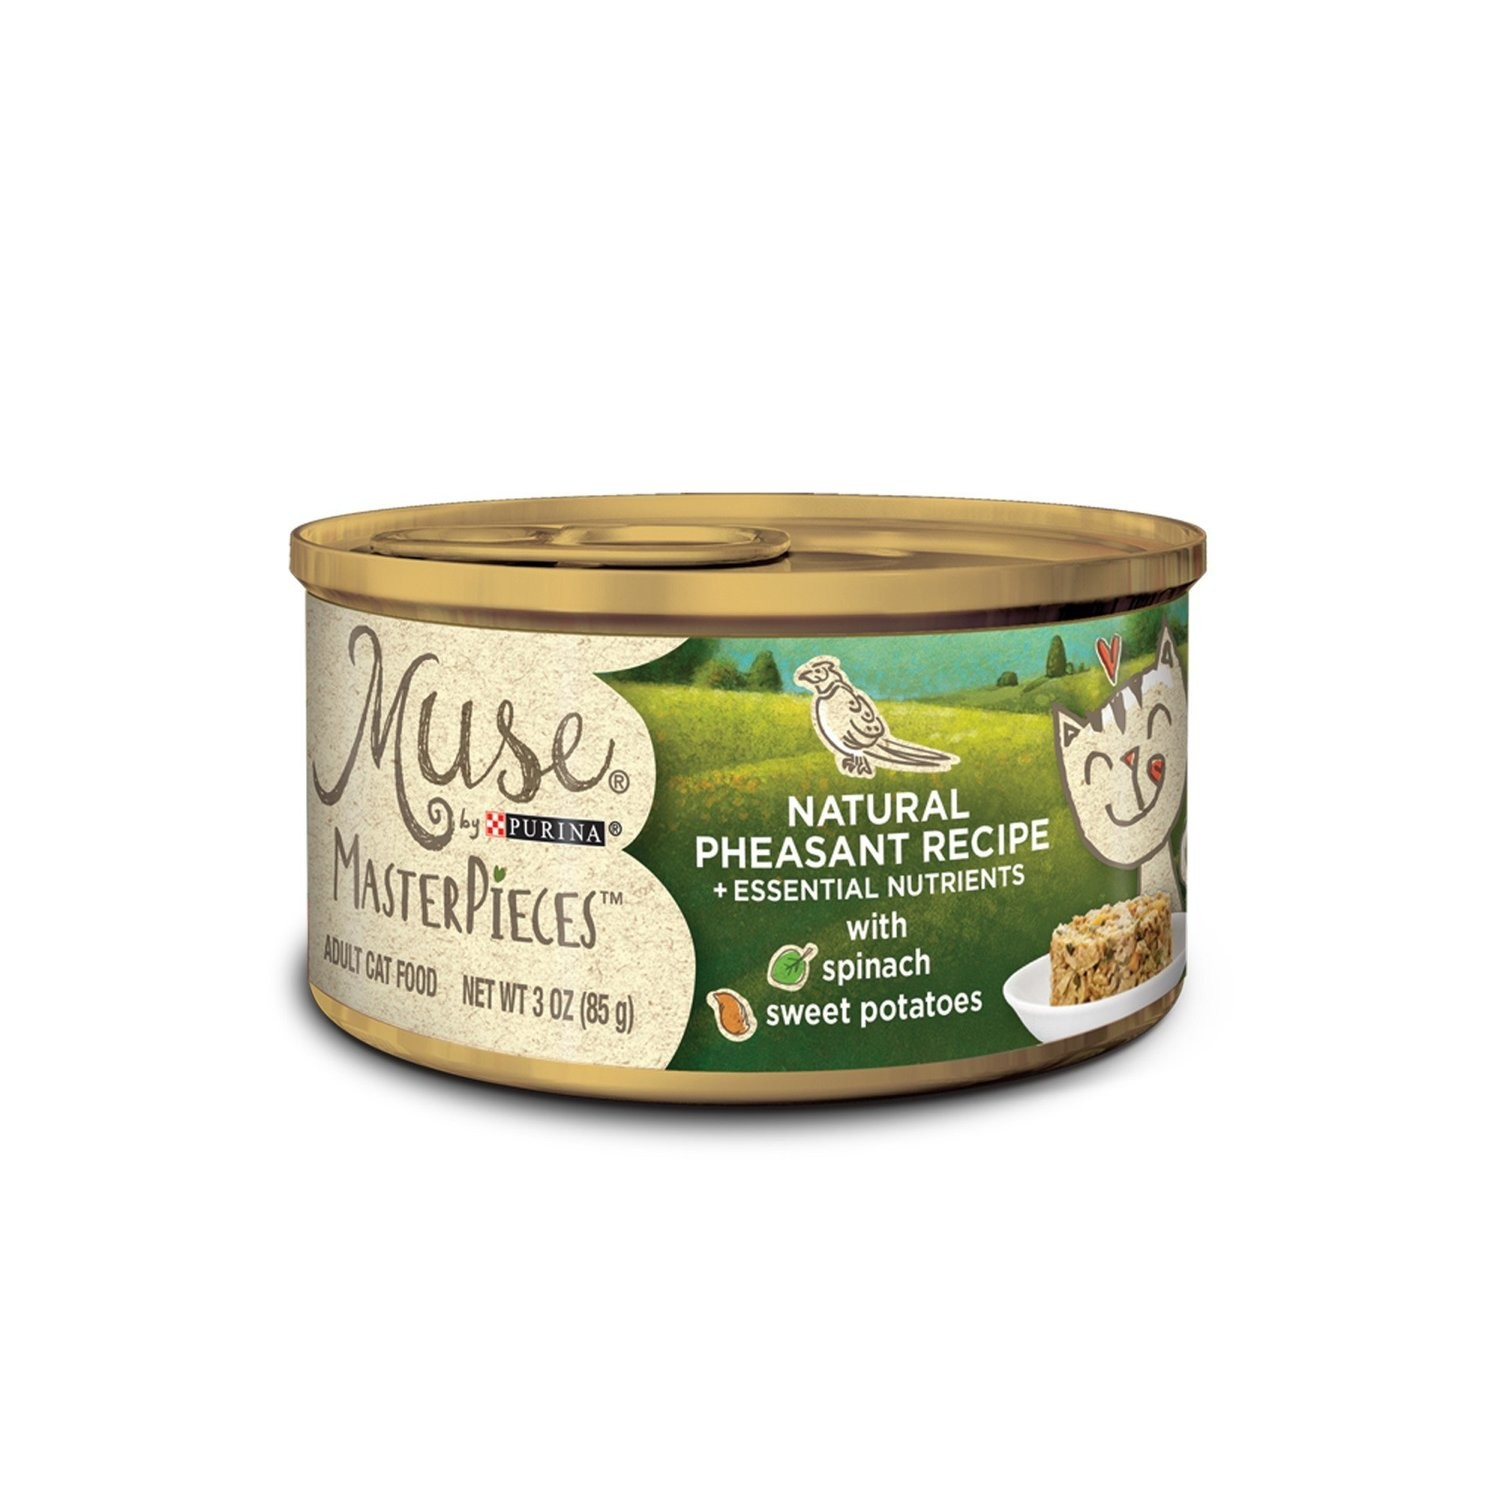 Muse by Purina MasterPieces Natural Pheasant Recipe accented with Sweet Potato & Spinach 3 oz 24 count (5/18) (A.K5)